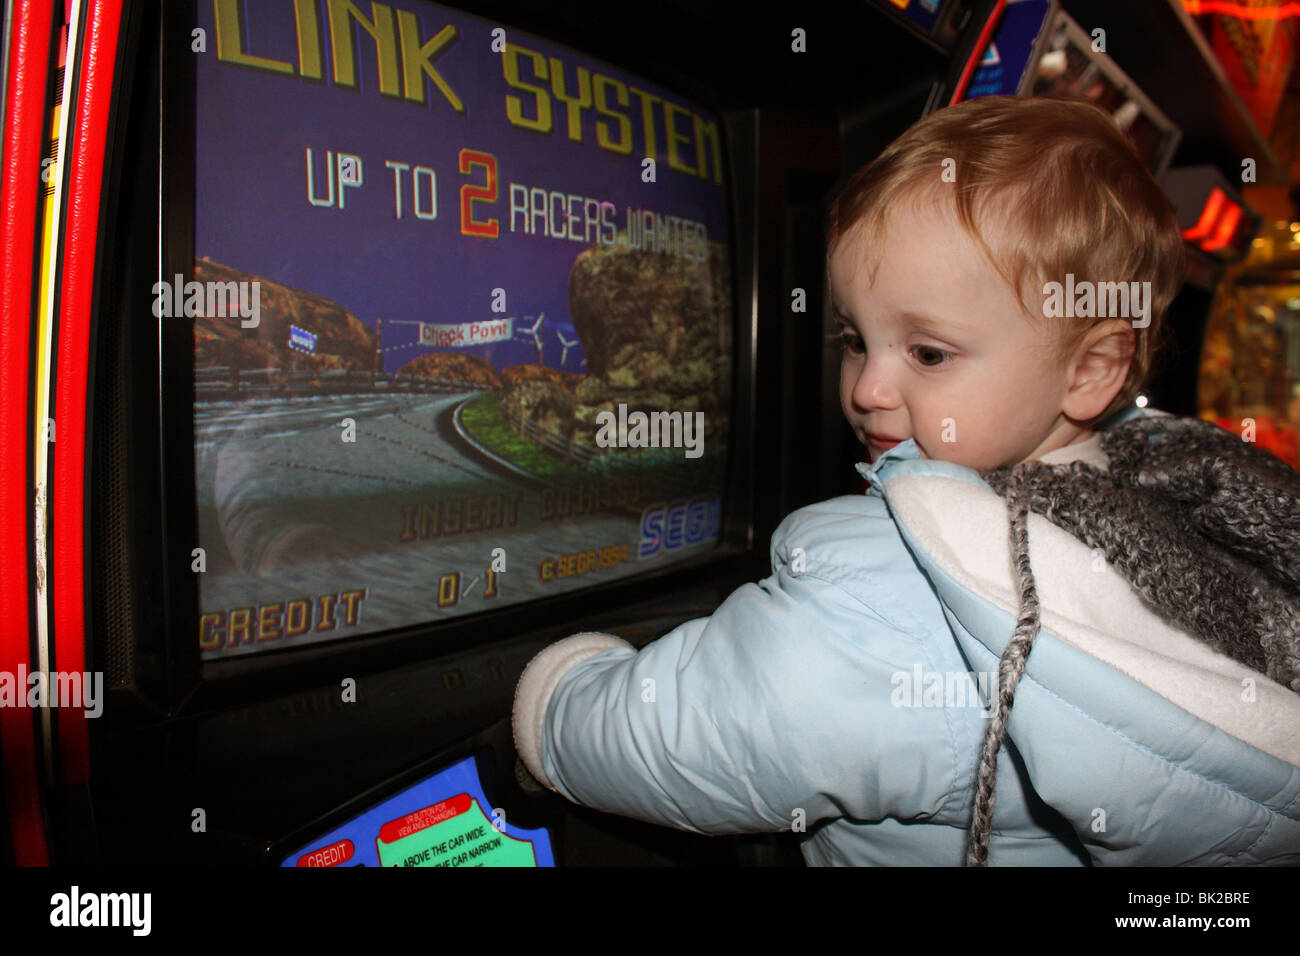 A young baby boy; just one year old entertaining himself by playing on a racing car game at the amusement arcade - Stock Image